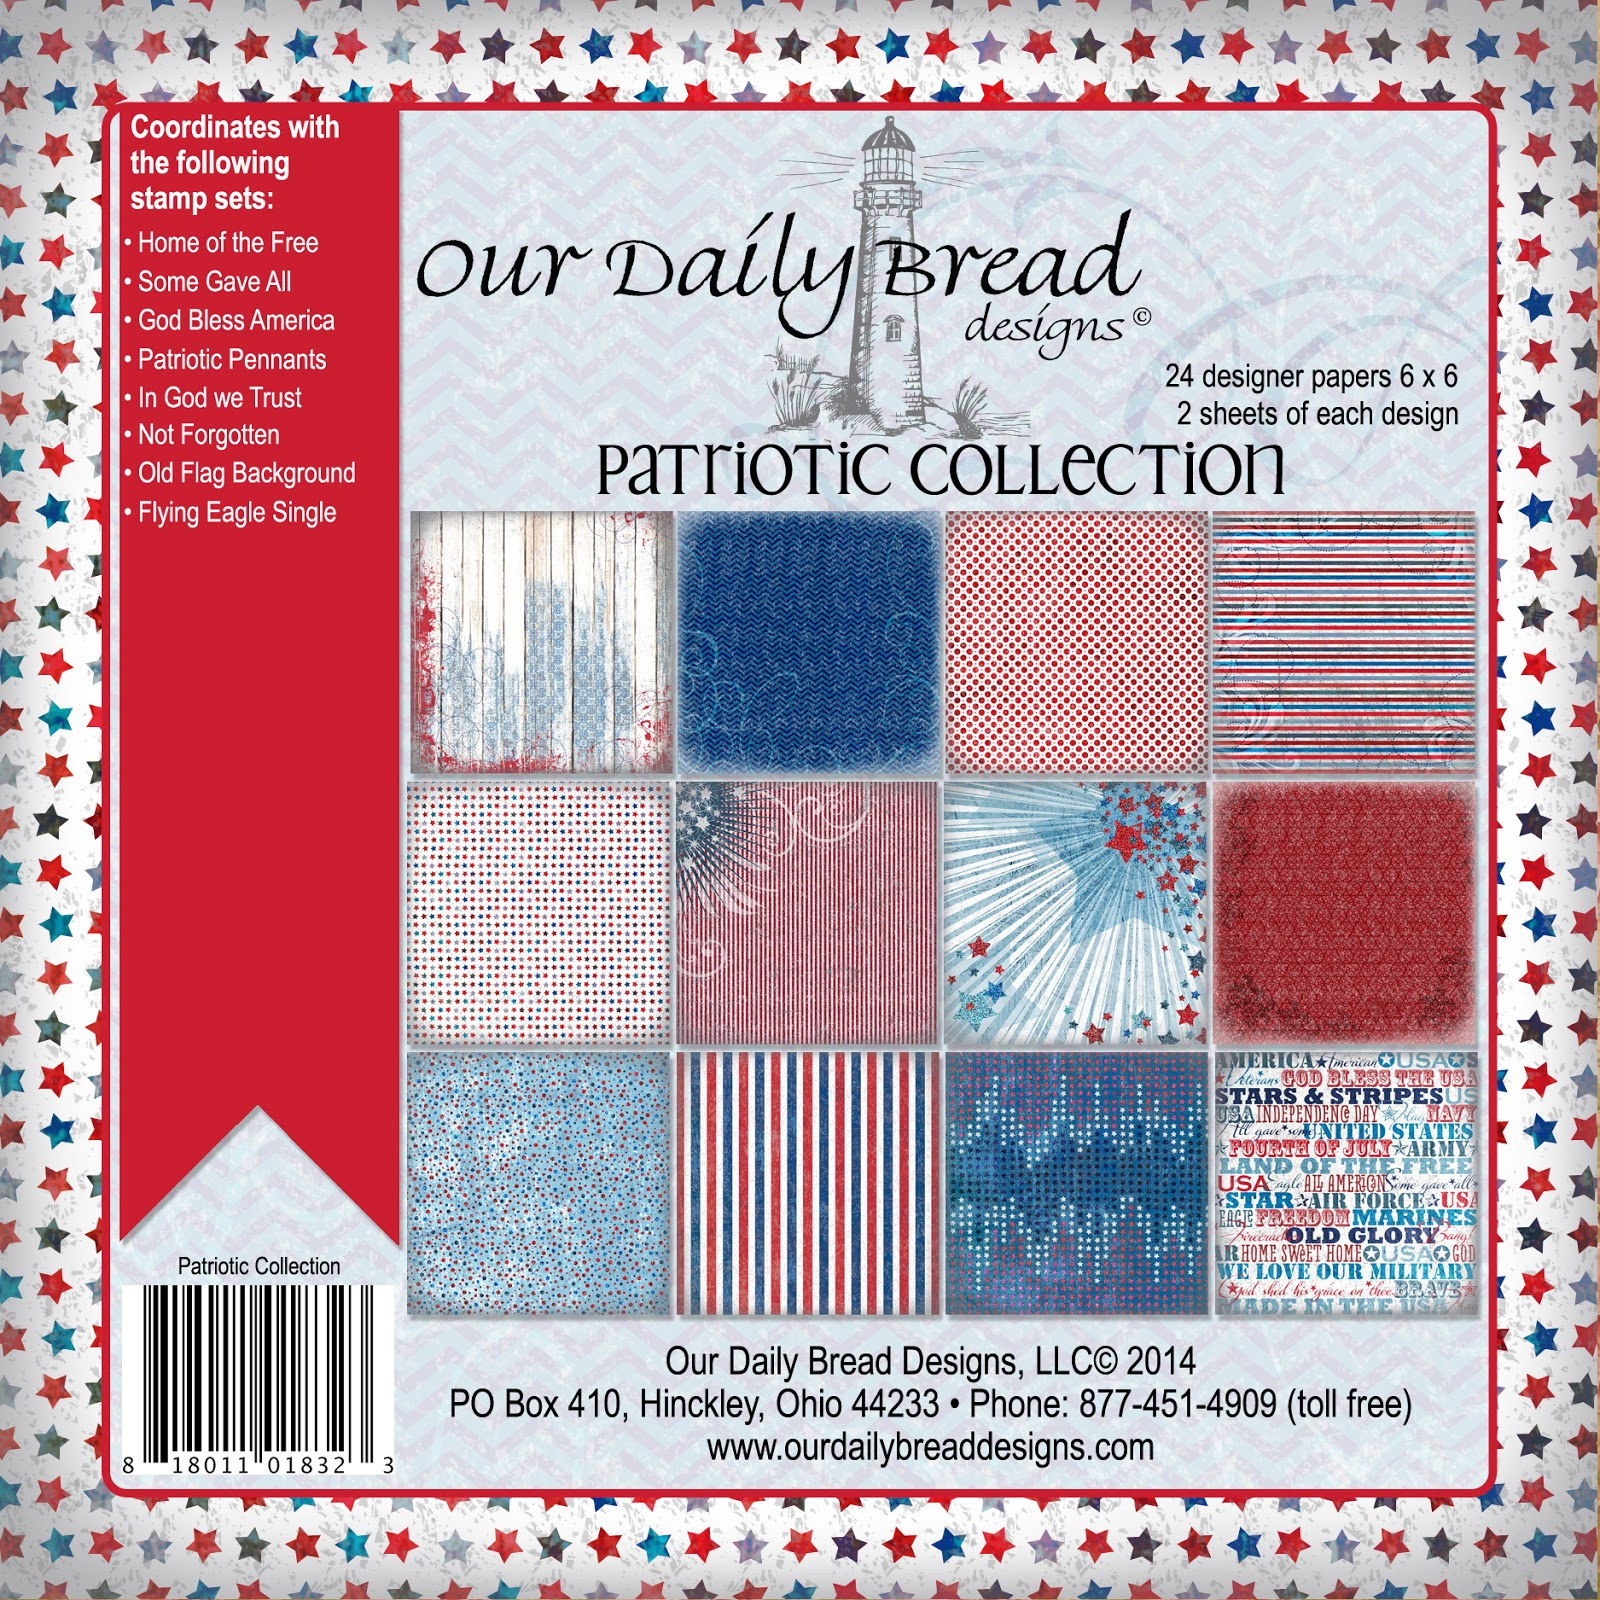 https://www.ourdailybreaddesigns.com/index.php/patriotic-collection-6x6-paper-pad.html